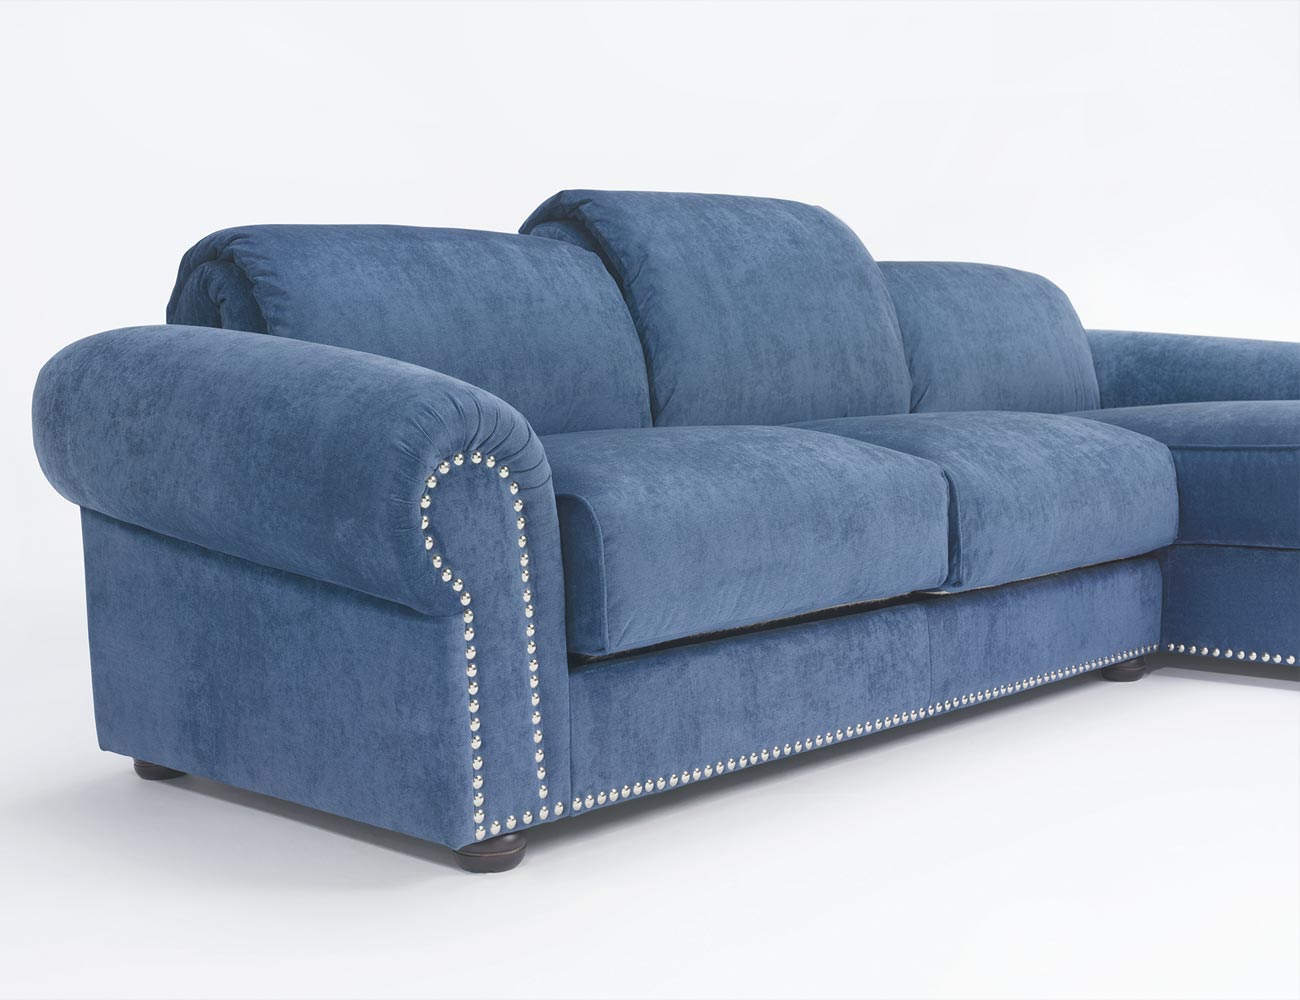 Sofa chaiselongue gran lujo decorativo azul 140